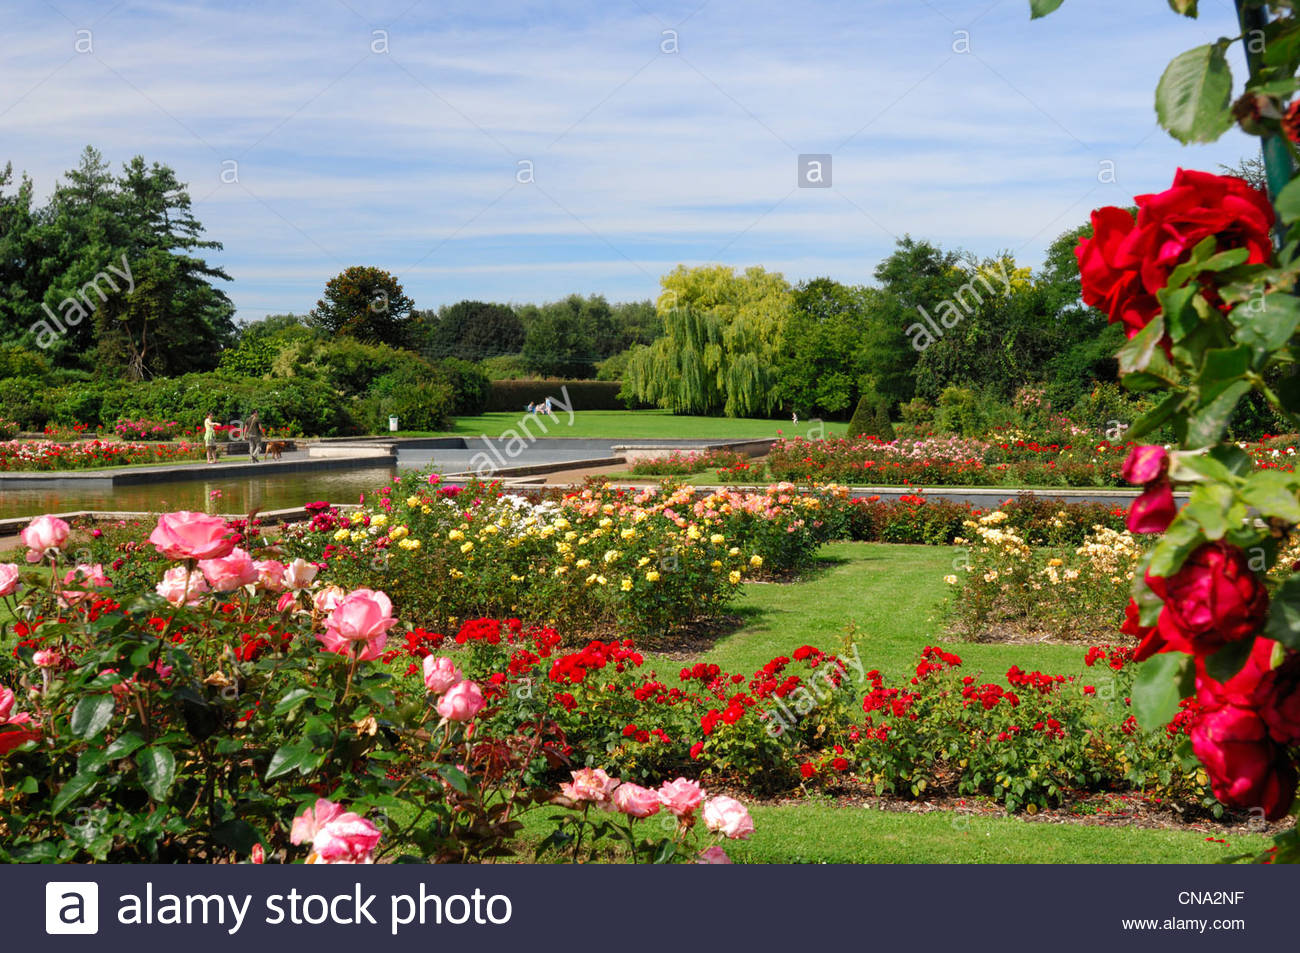 france nord lille jardin des plantes de lille roses and walkers in CNA2NF